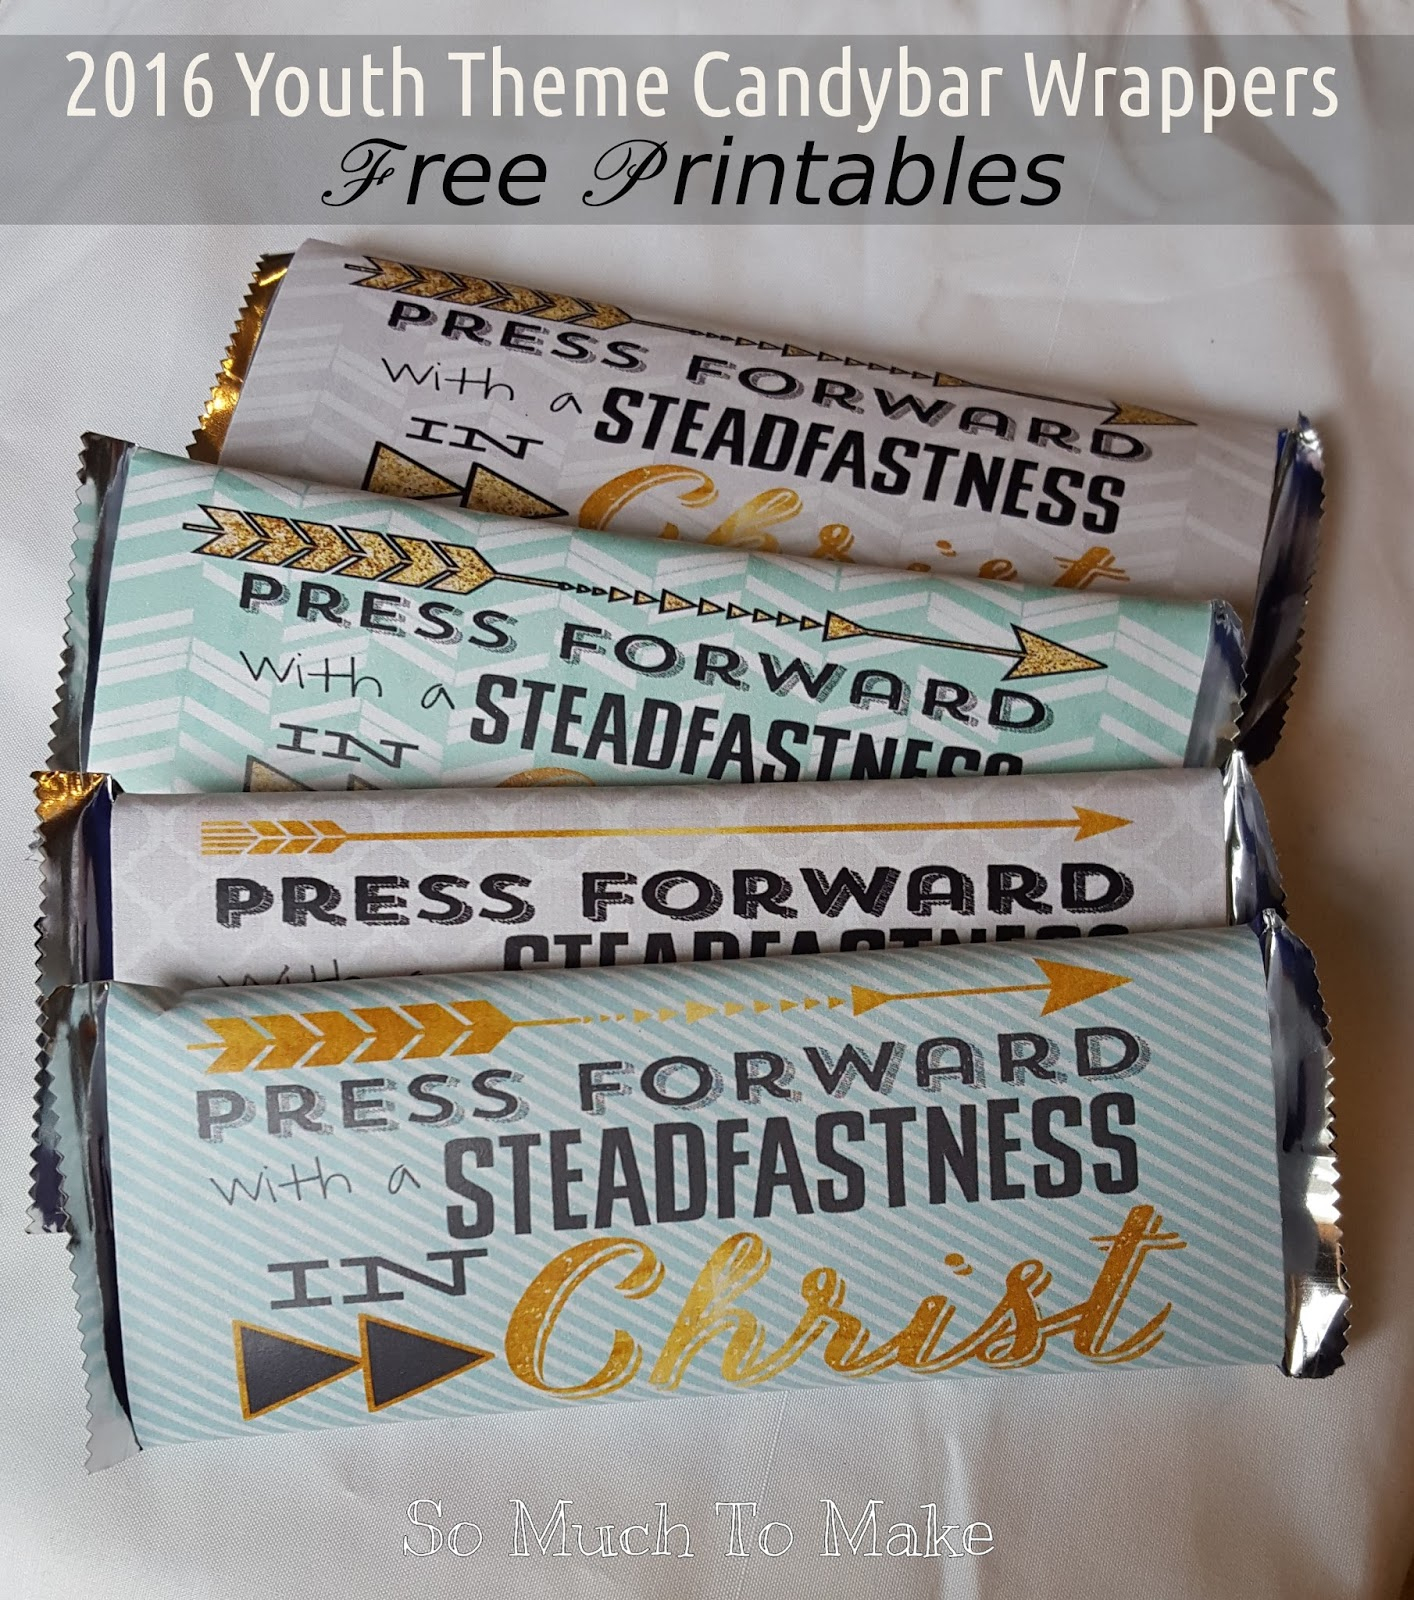 2016 Youth Theme Candybar Wrappers | So Much To Make - Free Printable Birthday Candy Bar Wrappers